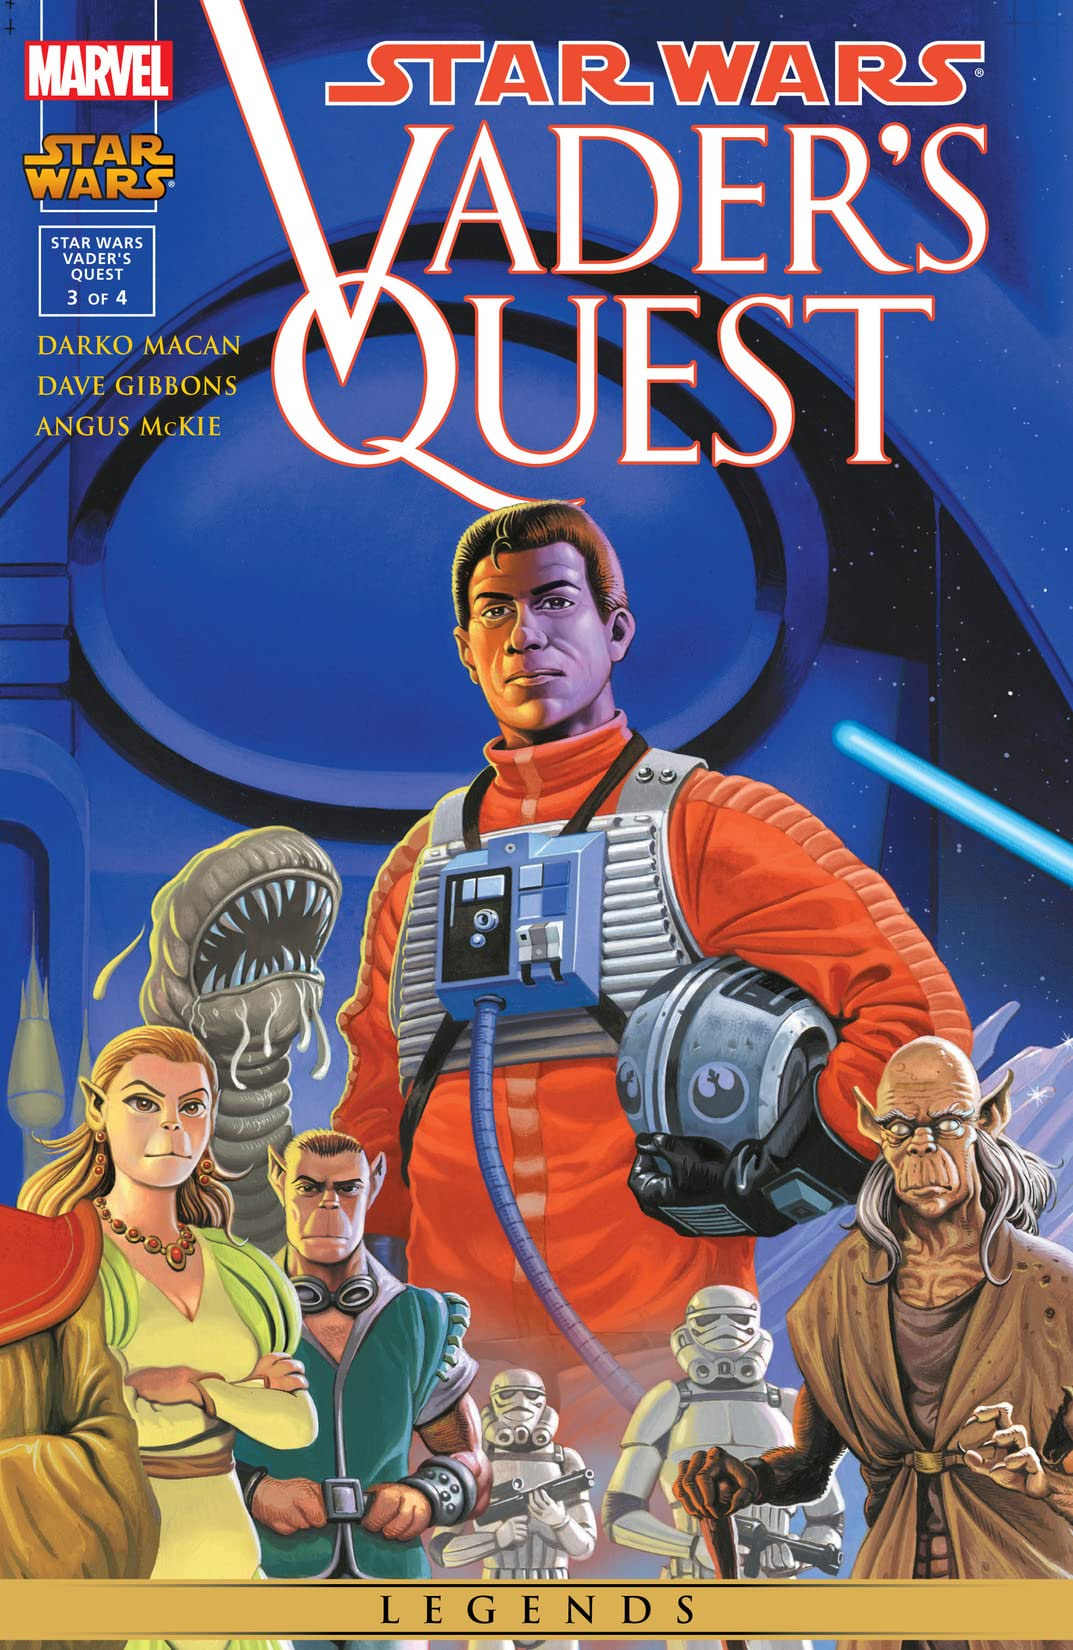 Star Wars: Vader's Quest (1999) #3 (of 4)